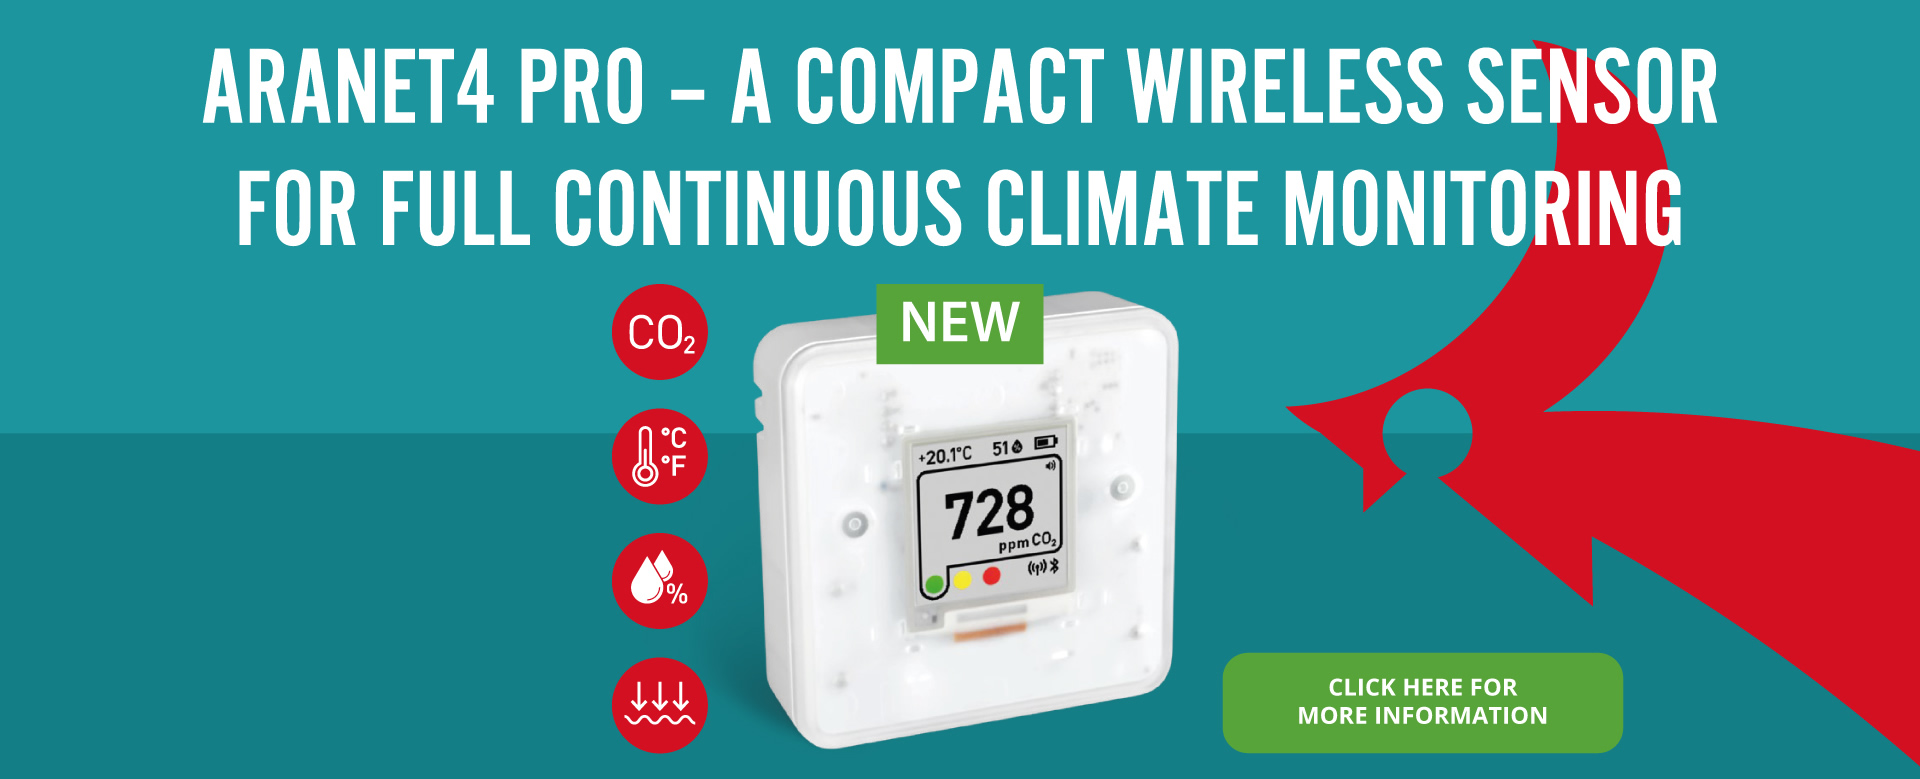 Aranet 4 Pro - A compact wireless sensor for full continuous climate monitoring